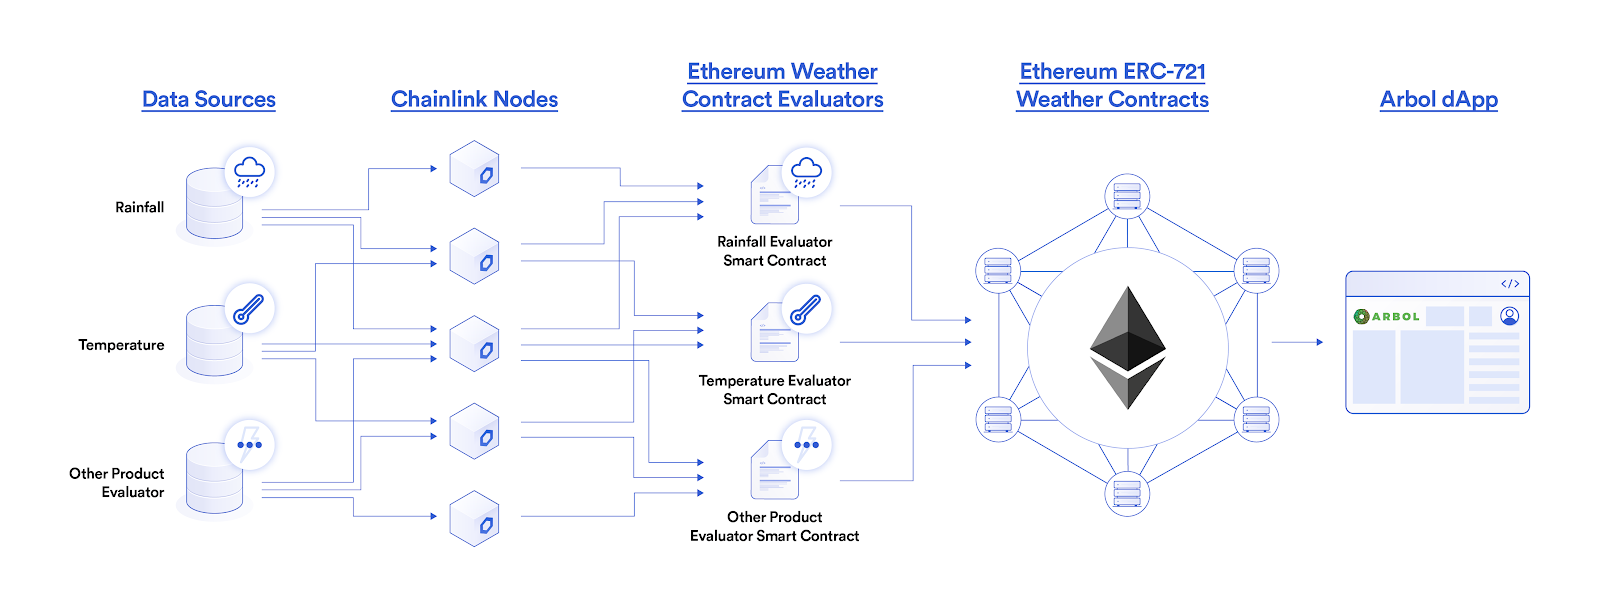 Chainlink connects weather data sources to nodes for Arbol's decentralized insurance.